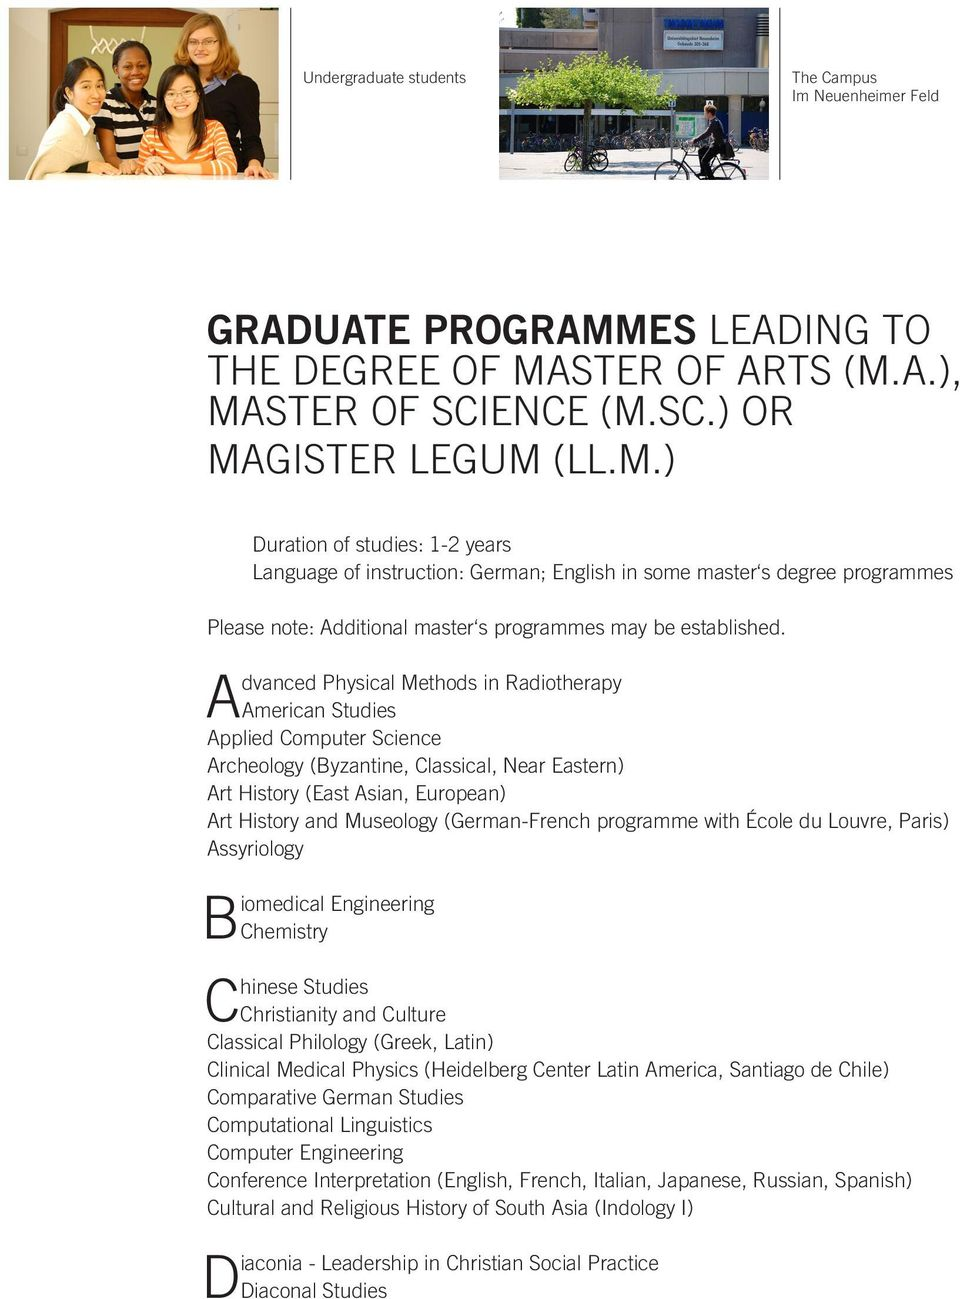 STER OF ARTS (M.A.), MASTER OF SCIENCE (M.SC.) OR MAGISTER LEGUM (LL.M.) Duration of studies: 1-2 years Language of instruction: German; English in some master s degree programmes Please note: Additional master s programmes may be established.